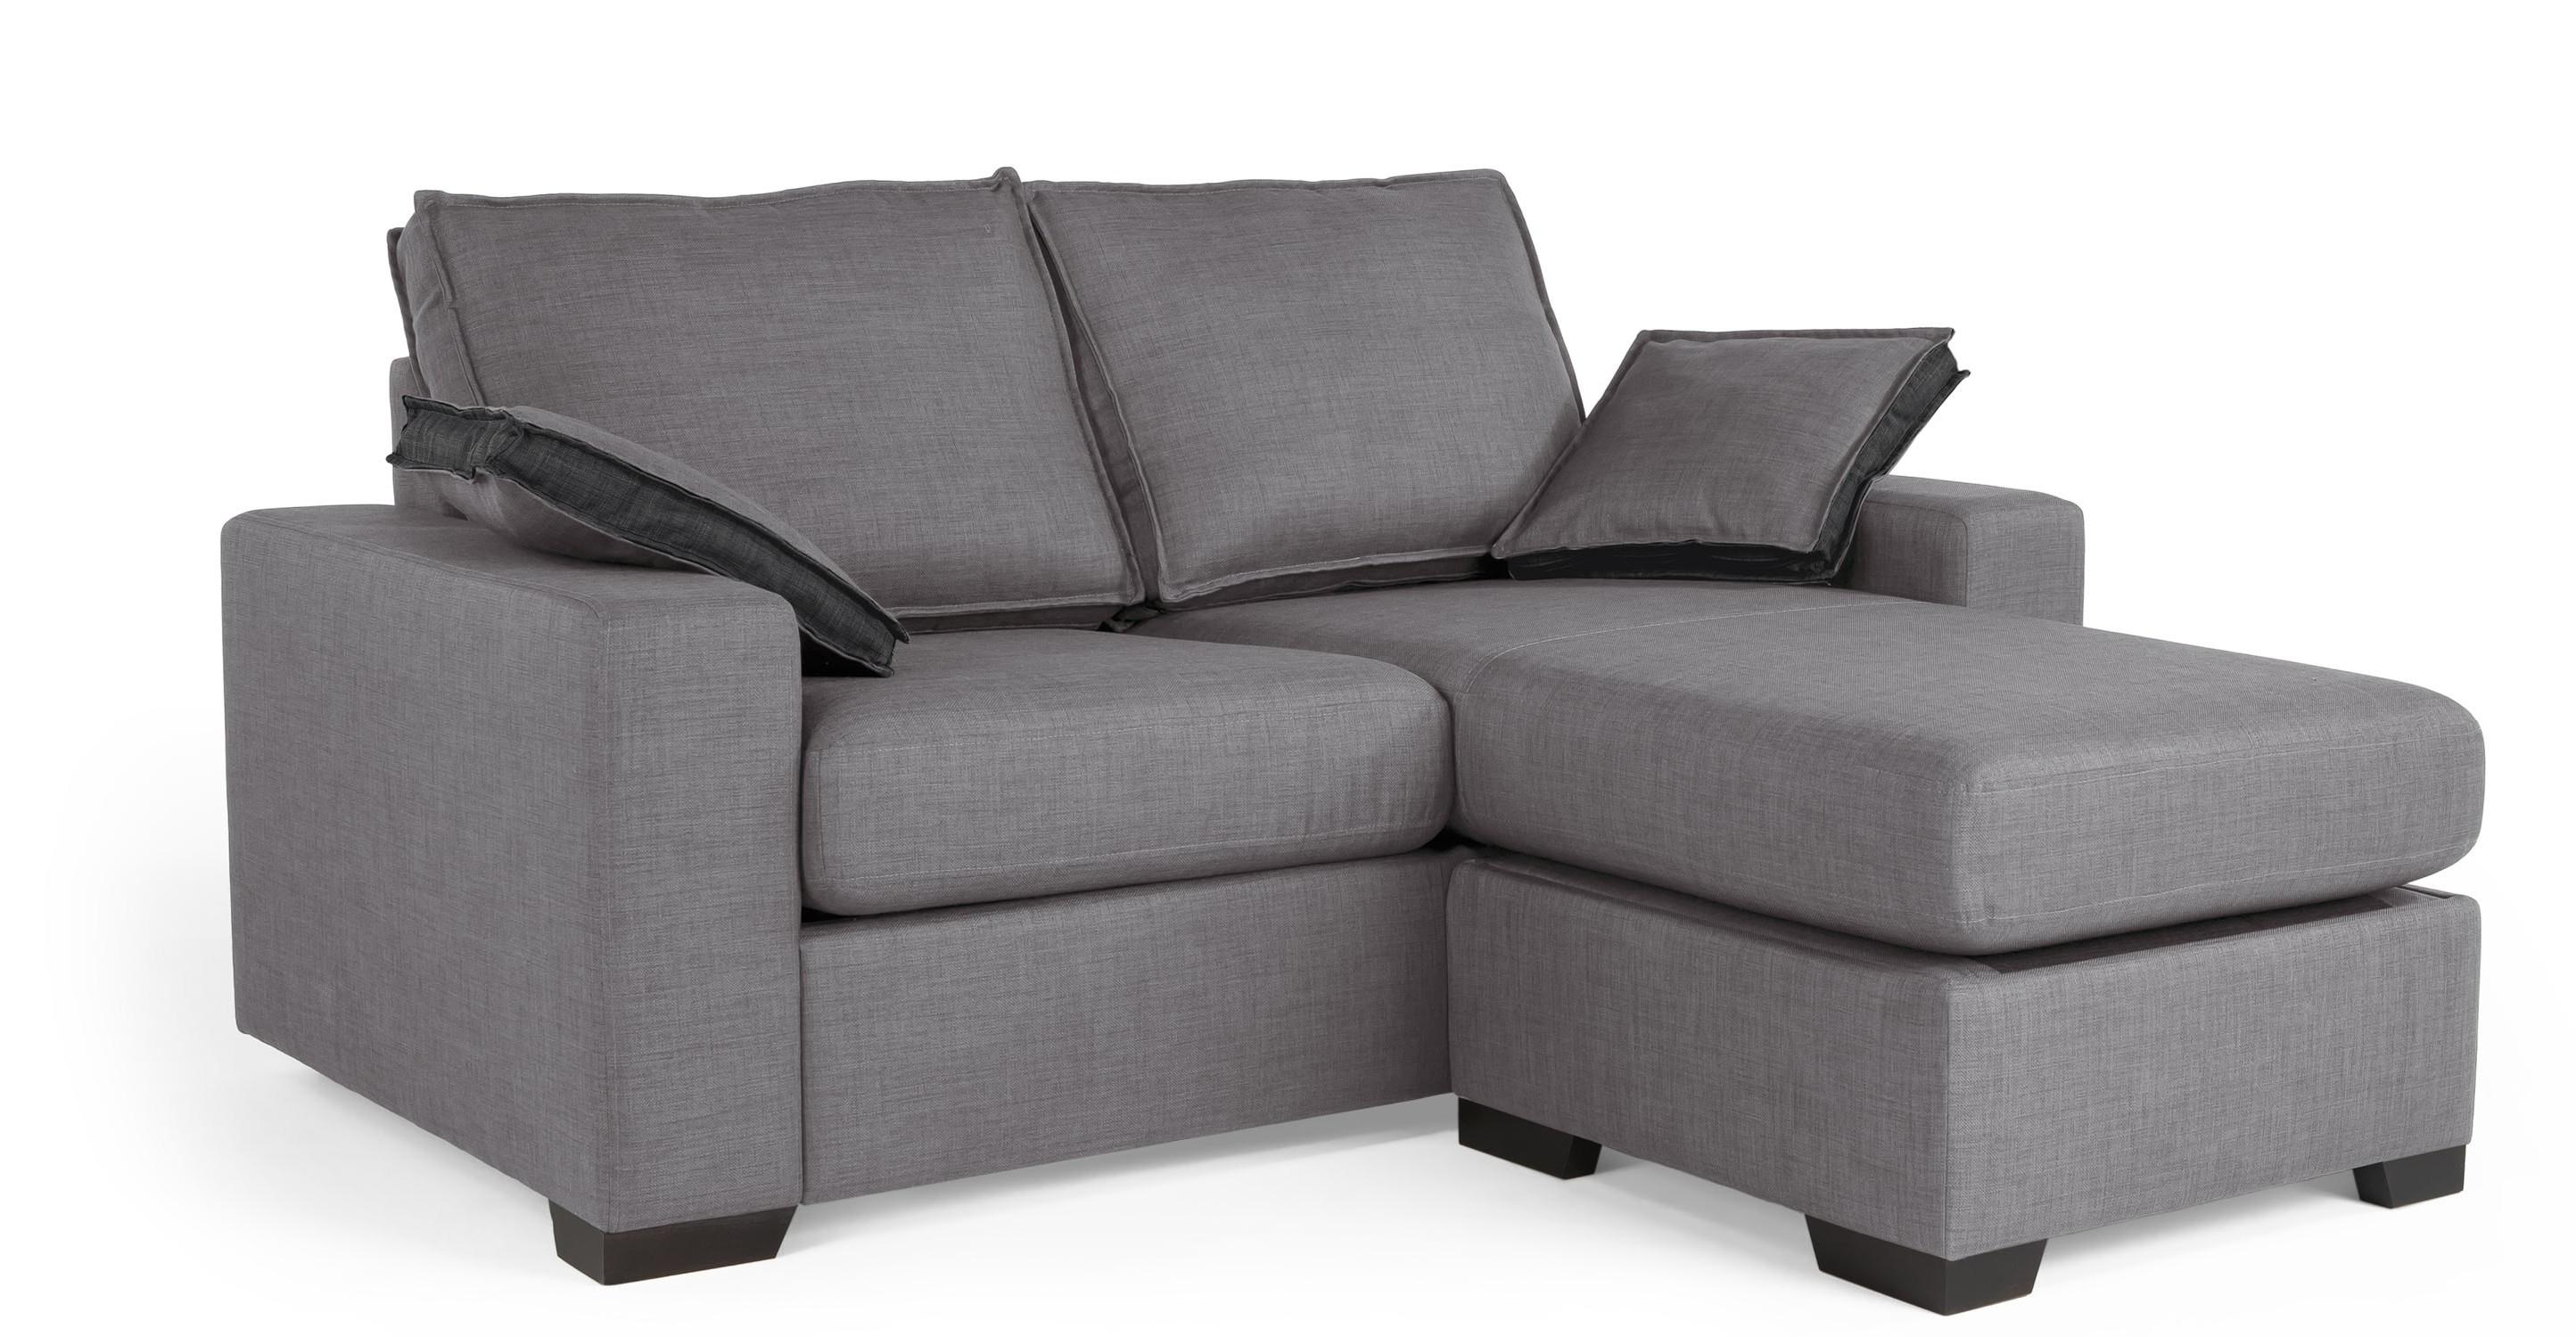 Ashley Furniture Futons (View 7 of 15)